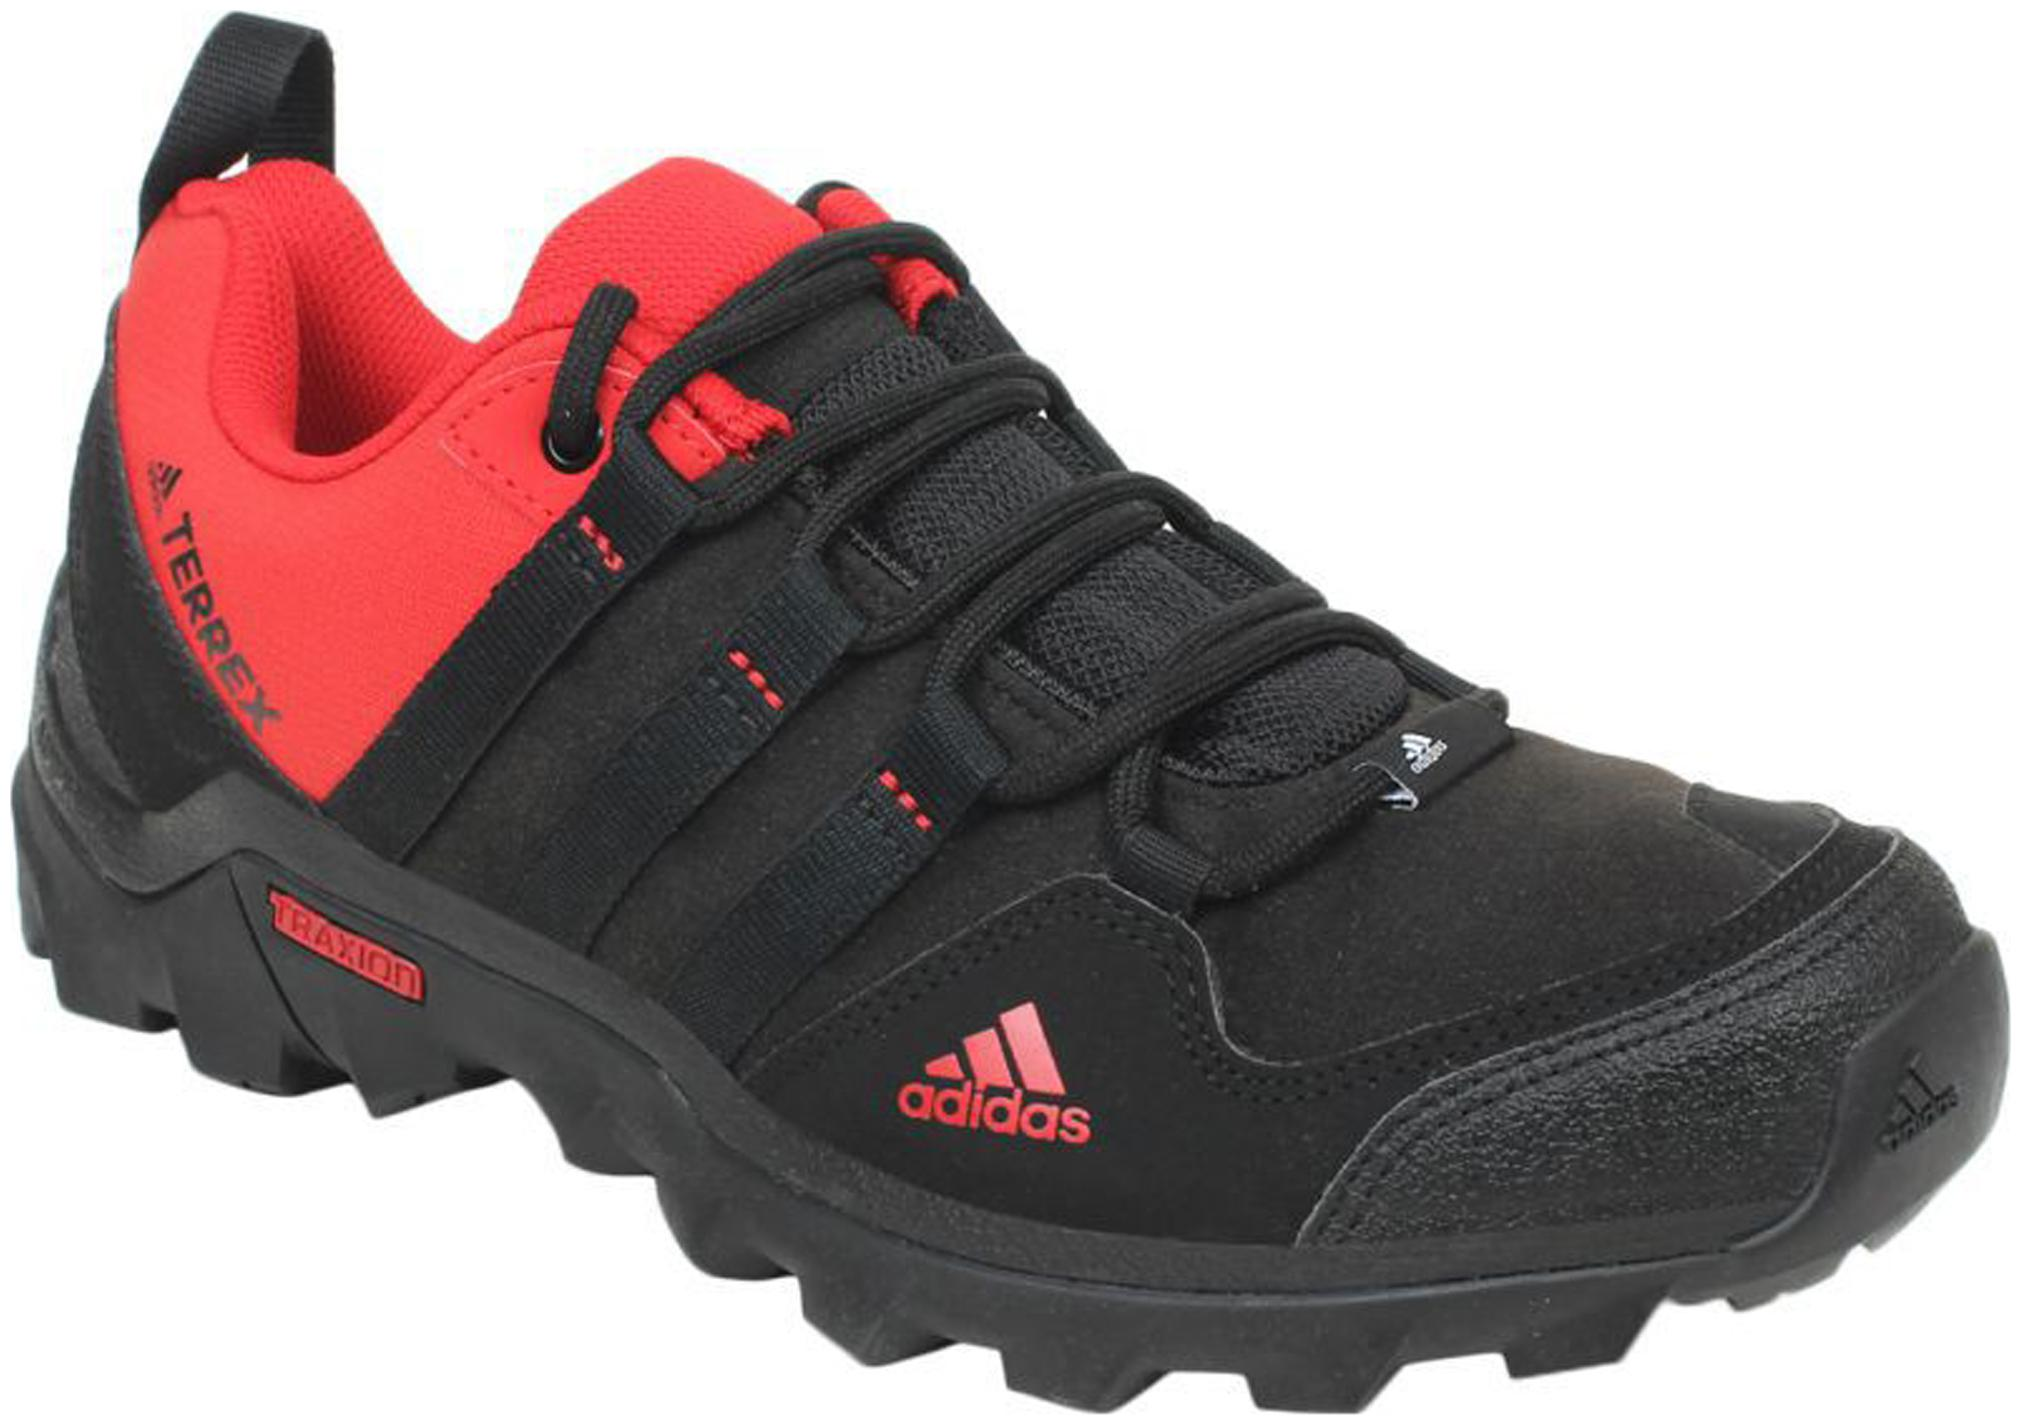 https://assetscdn1.paytm.com/images/catalog/product/F/FO/FOOADIDAS-SPORTSHOE749802105D88C/1563354275533_0..jpg